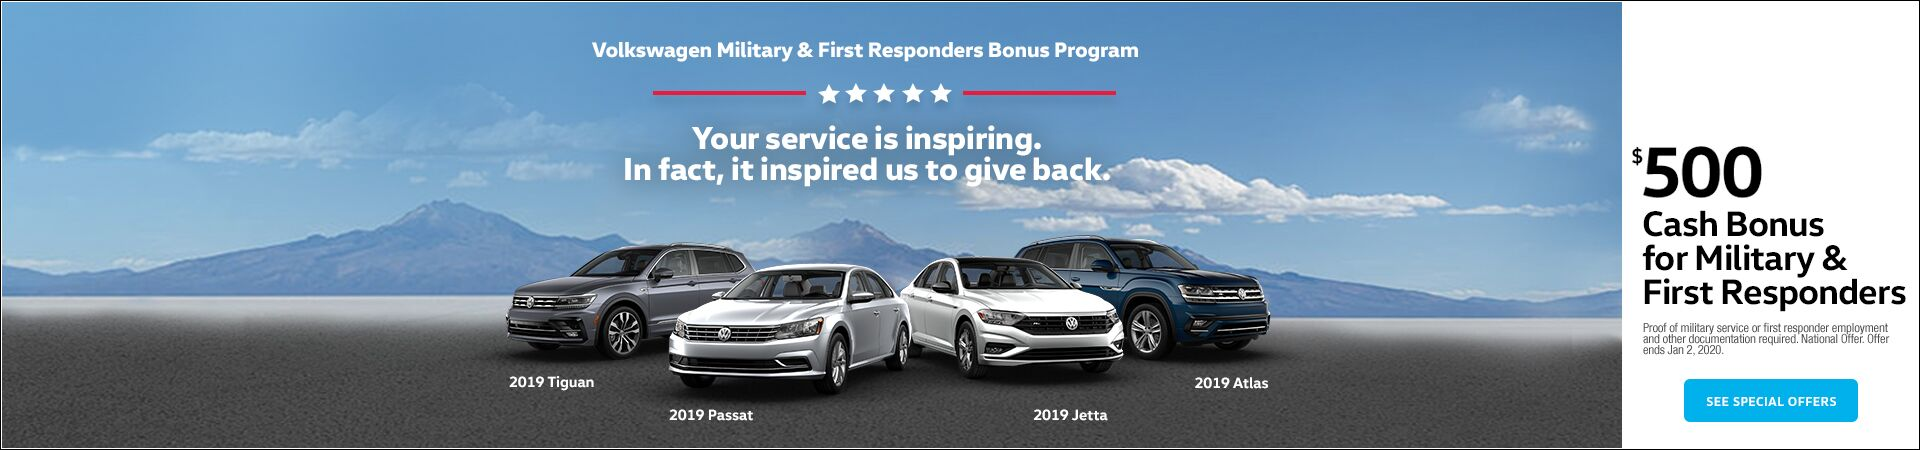 Military First Responders